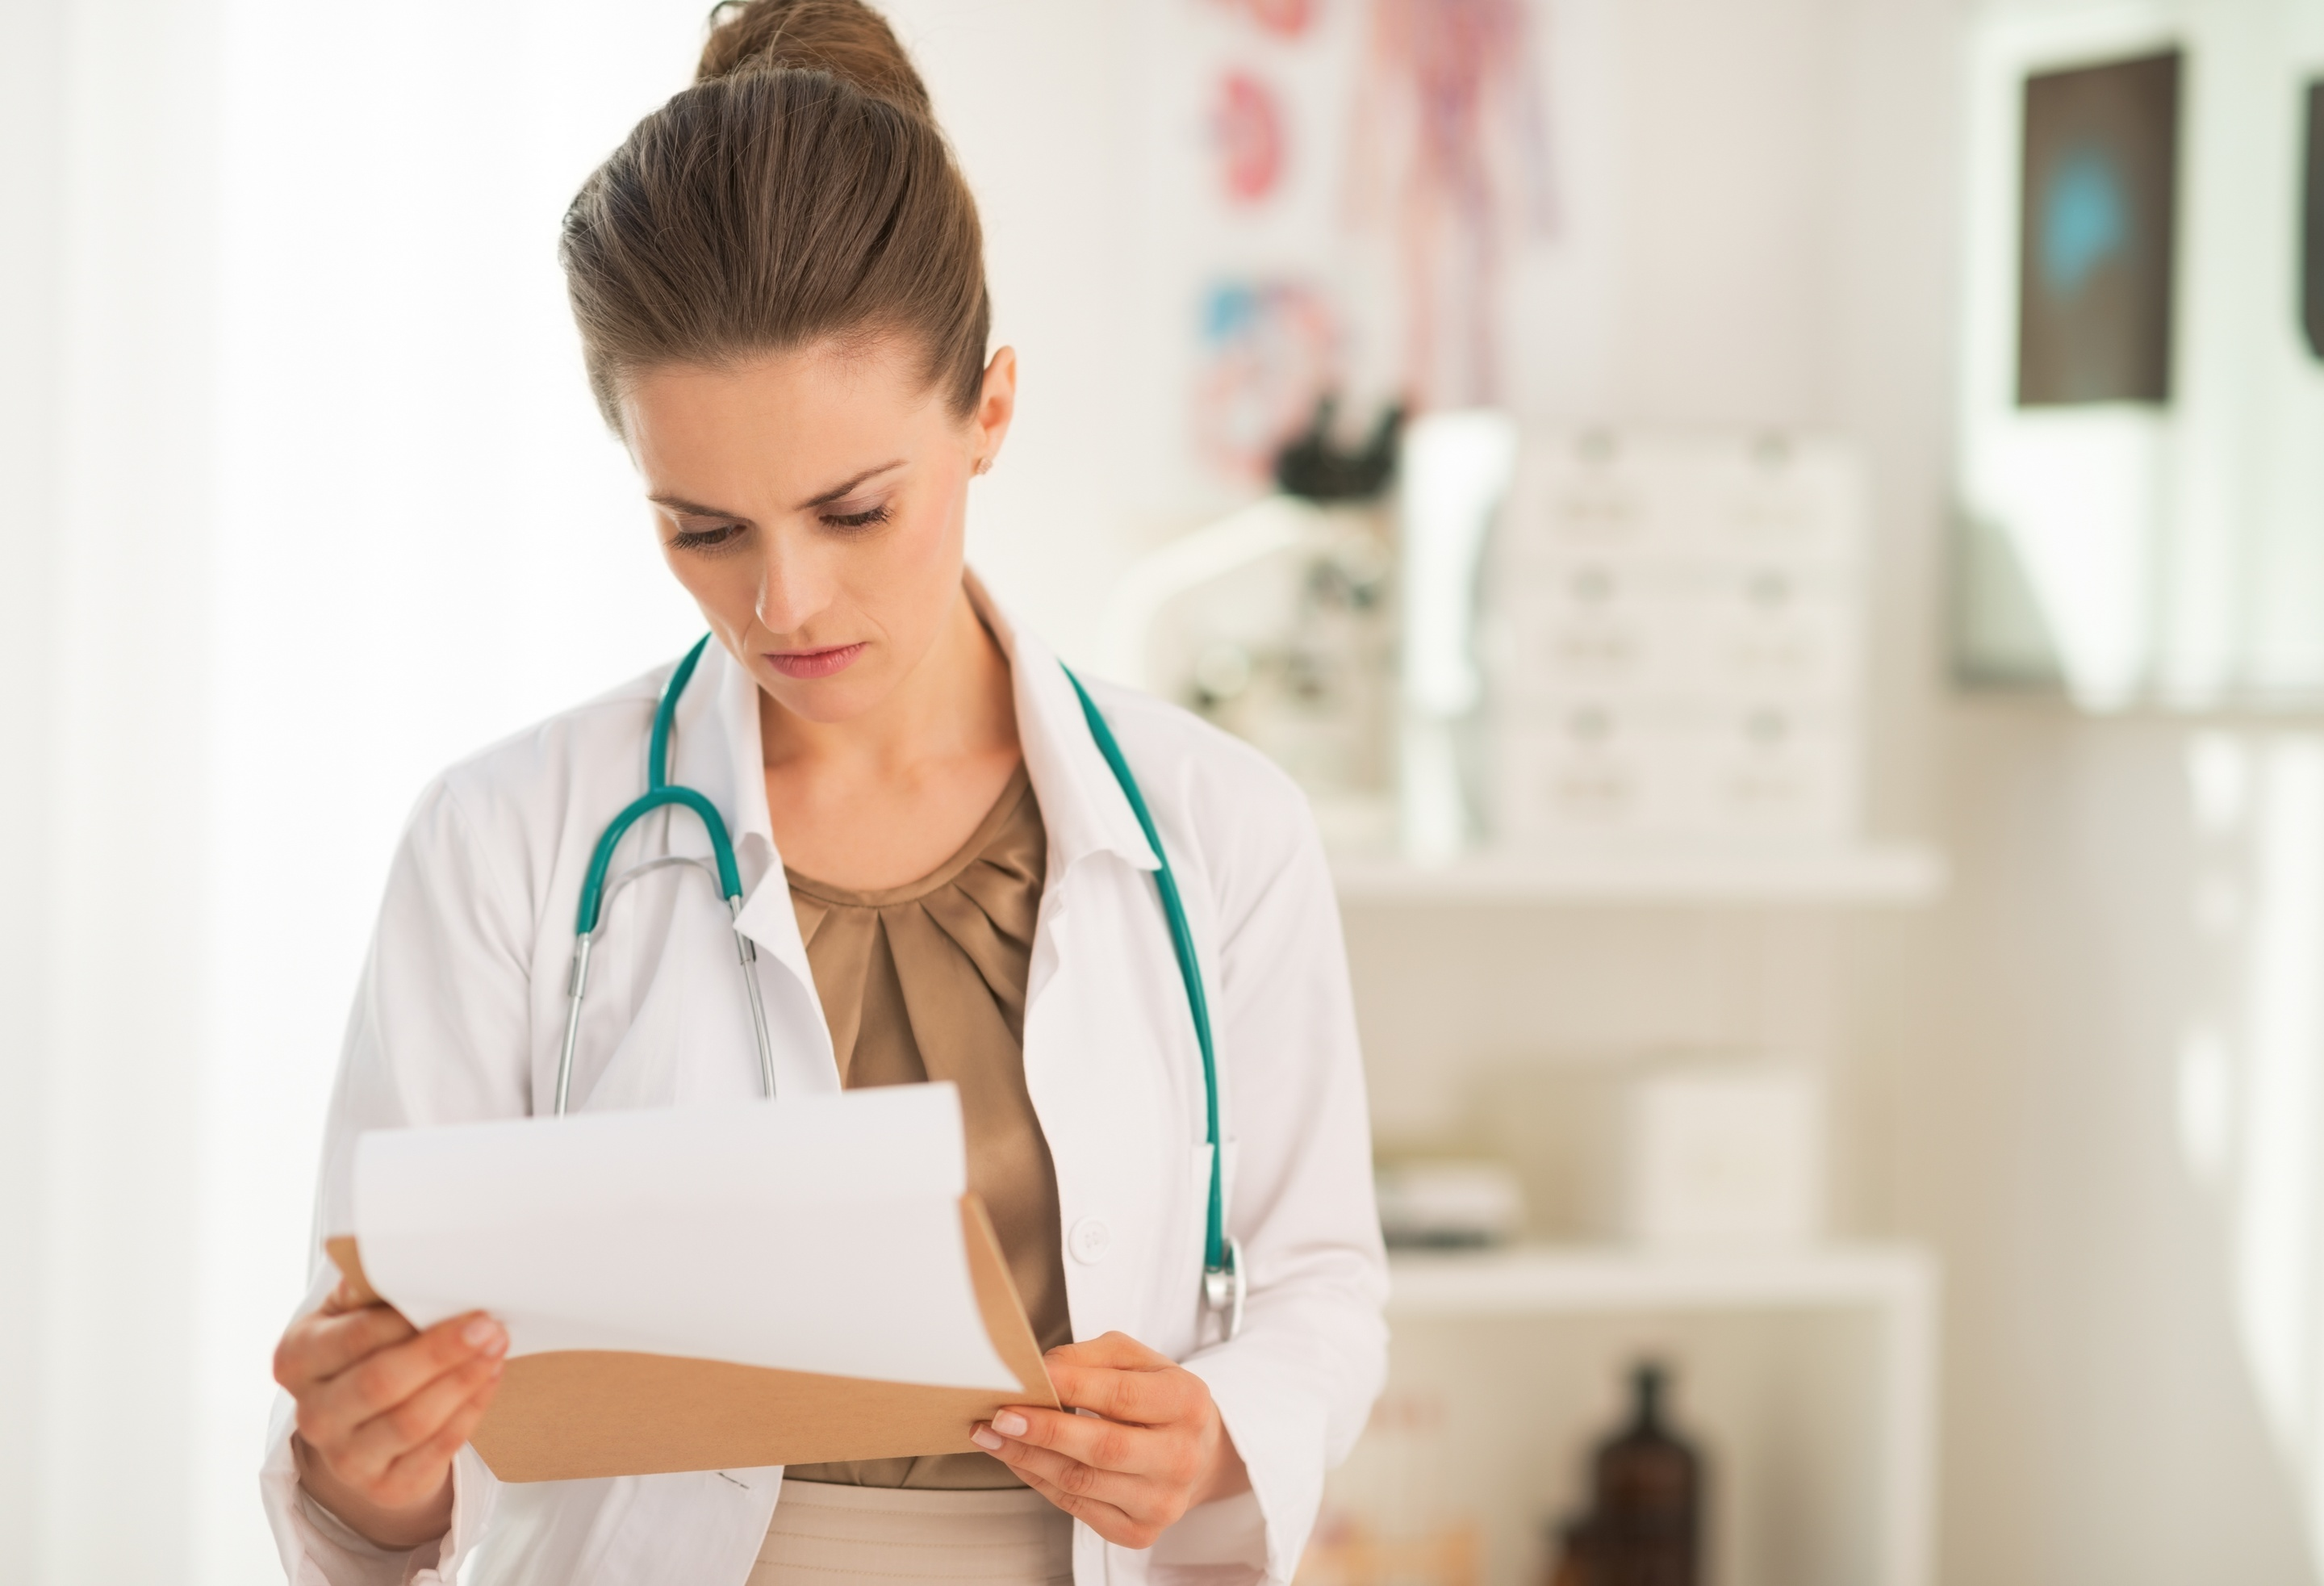 Medical doctor woman looking in clipboard